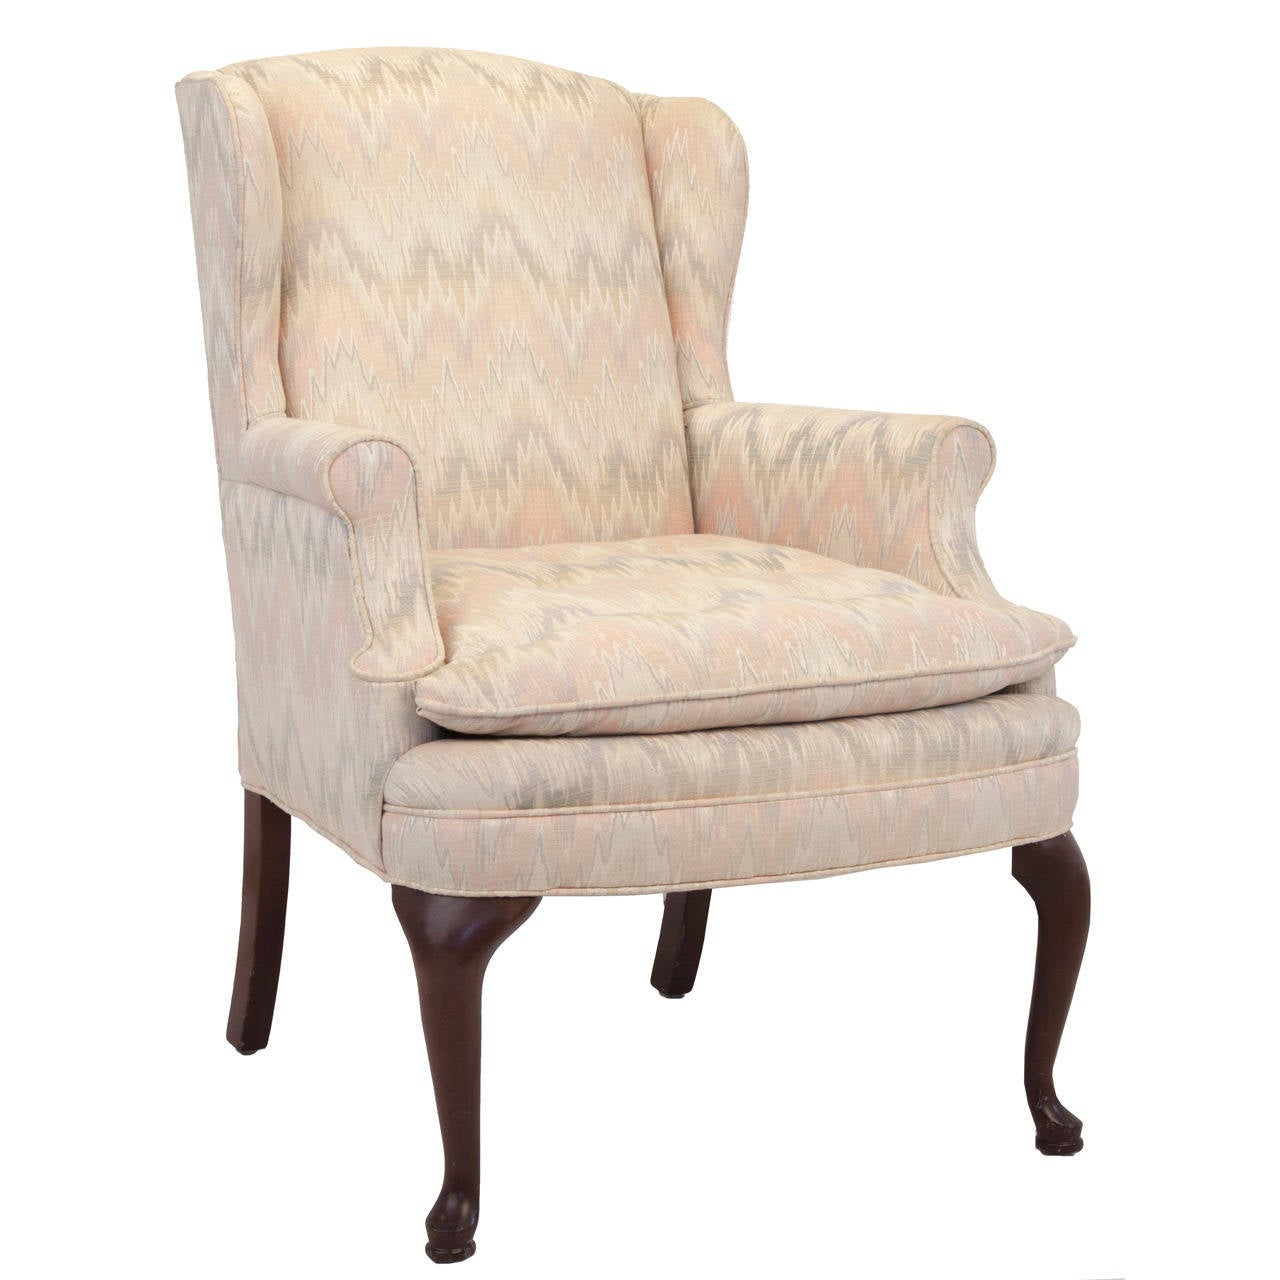 Queen anne style upholstered wing chair for sale at 1stdibs for Queen anne furniture